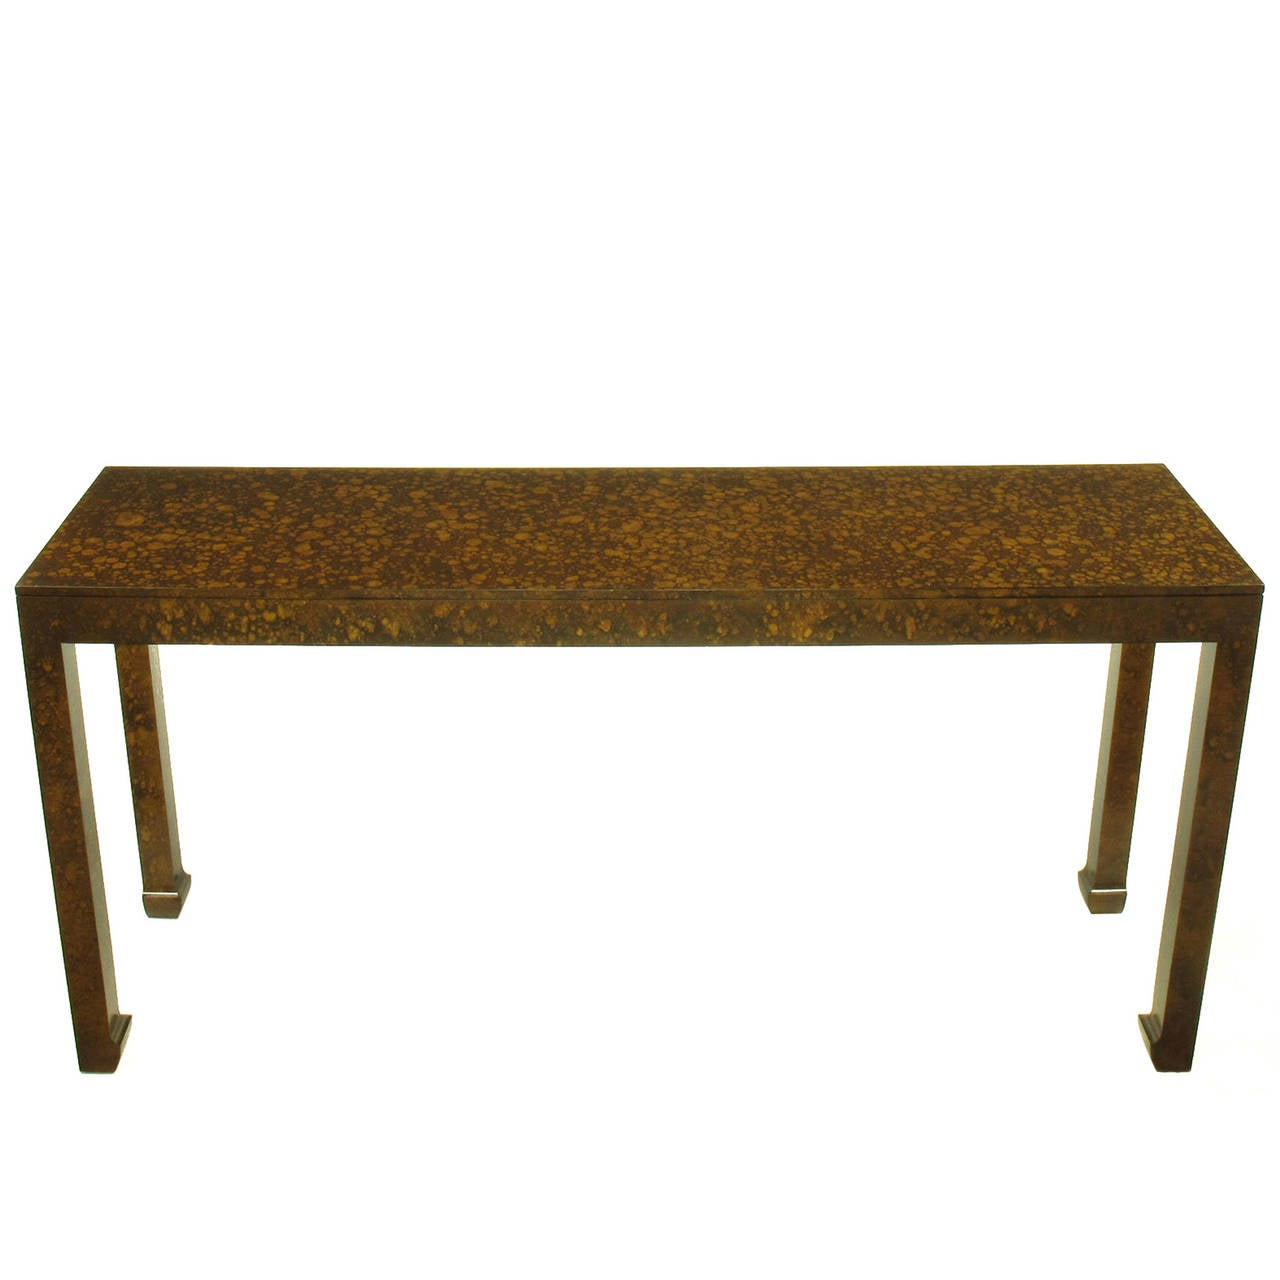 Long ming style console table finished in oil drop lacquer for Long sofa table 60